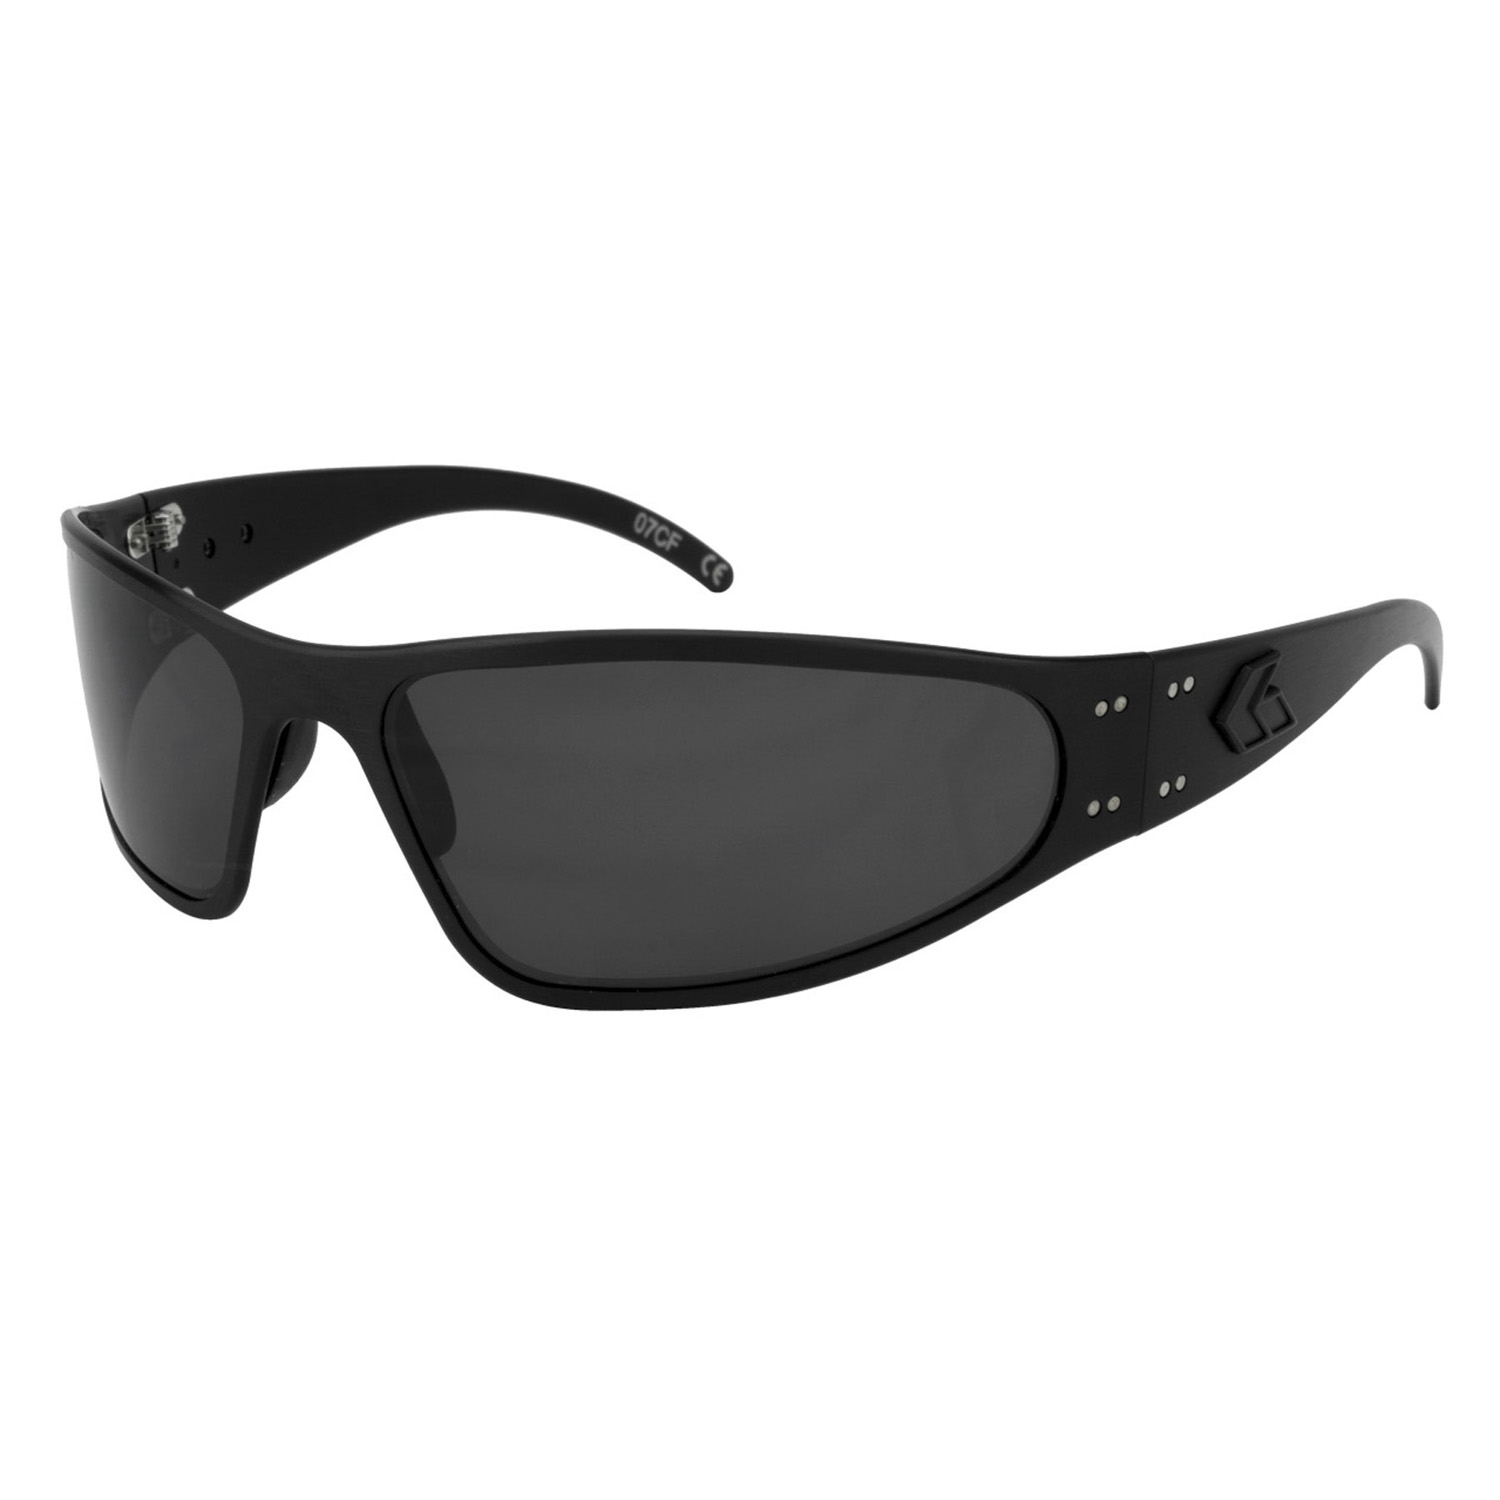 Gatorz Wraptor Blackout Sunglasses with Polarized Lens